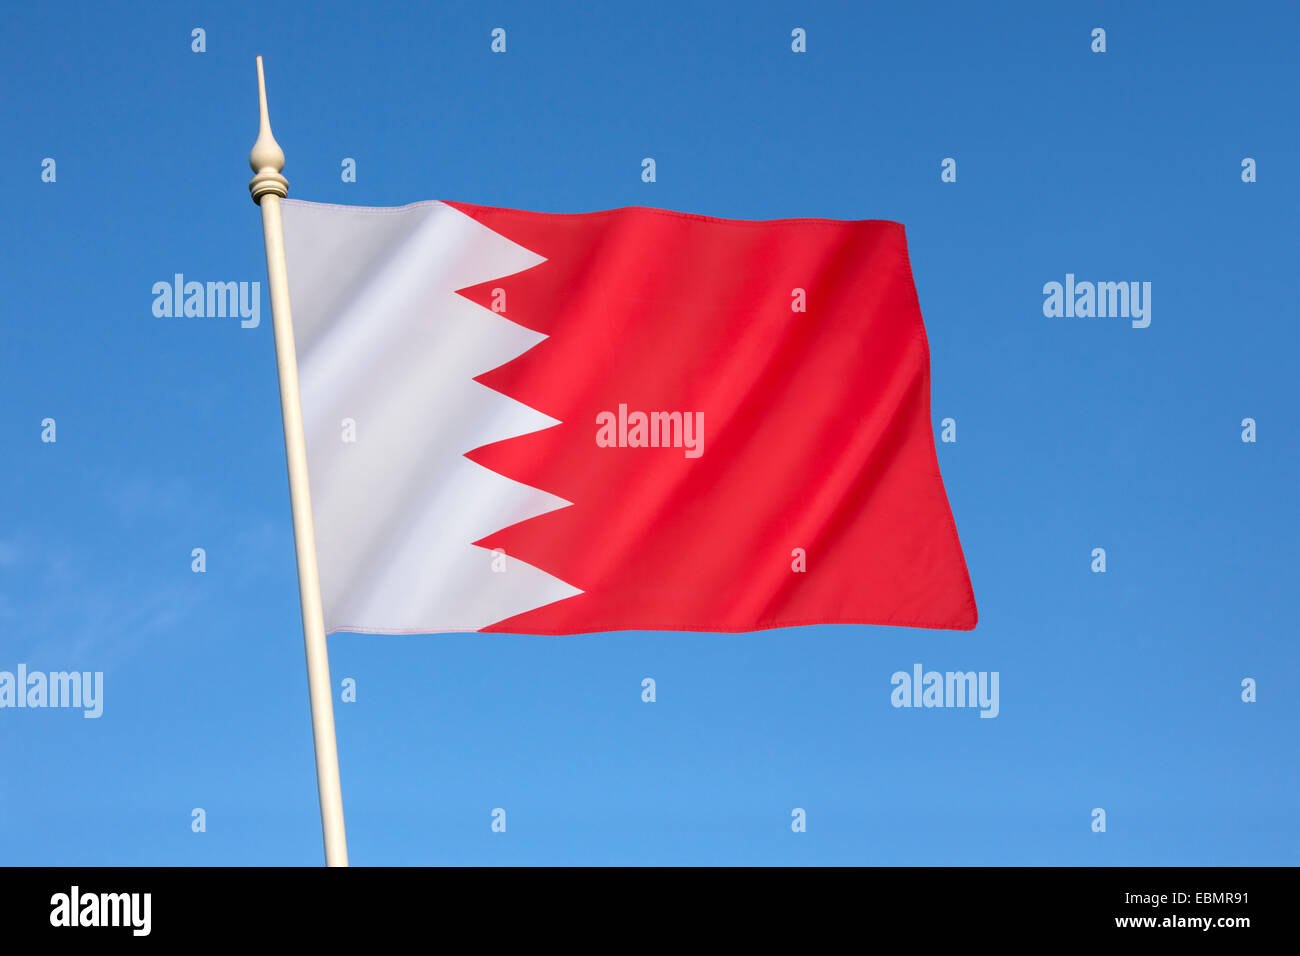 Flag of Bahrain - Stock Image